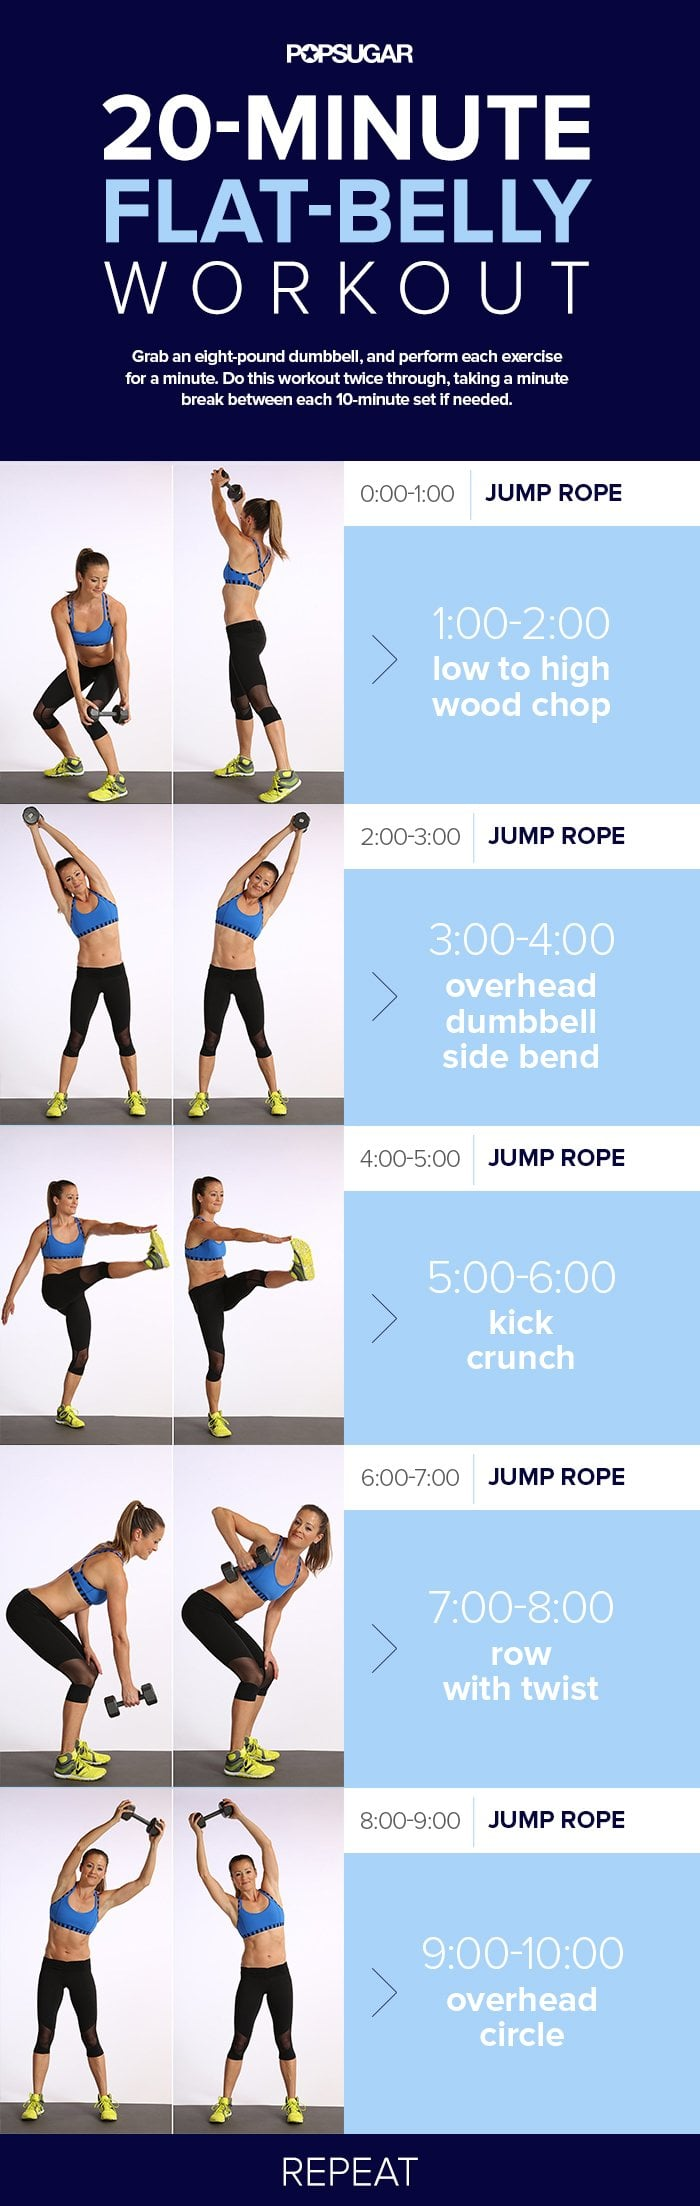 Day 6: 20-Minute Flat-Belly Workout